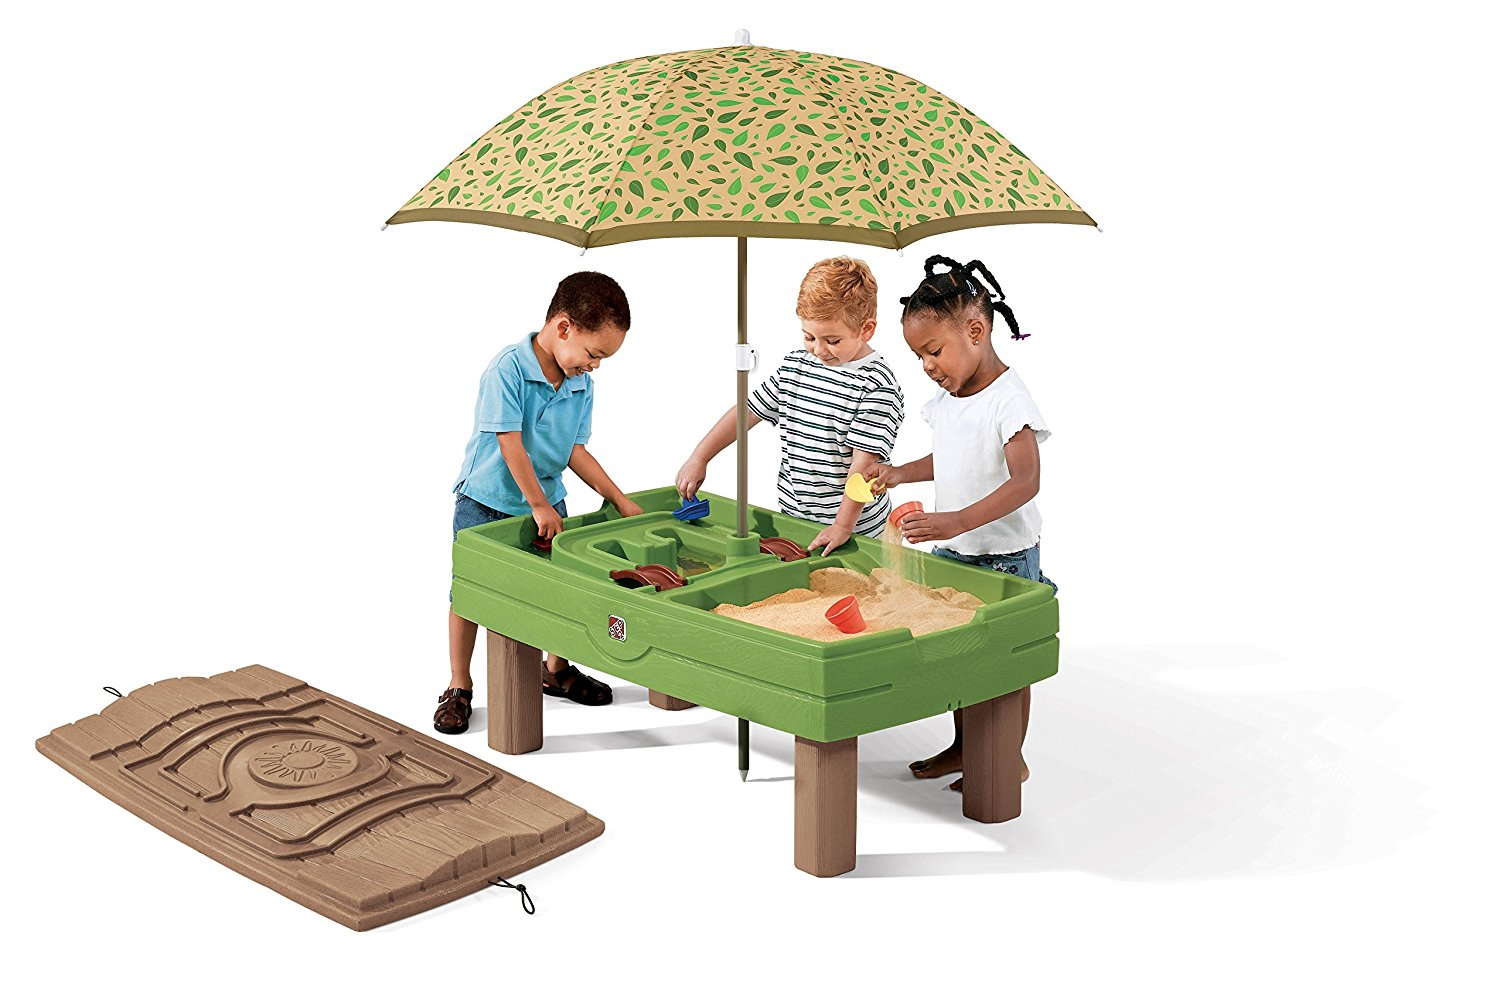 Top 10 Best Water Tables For Kids in 2018